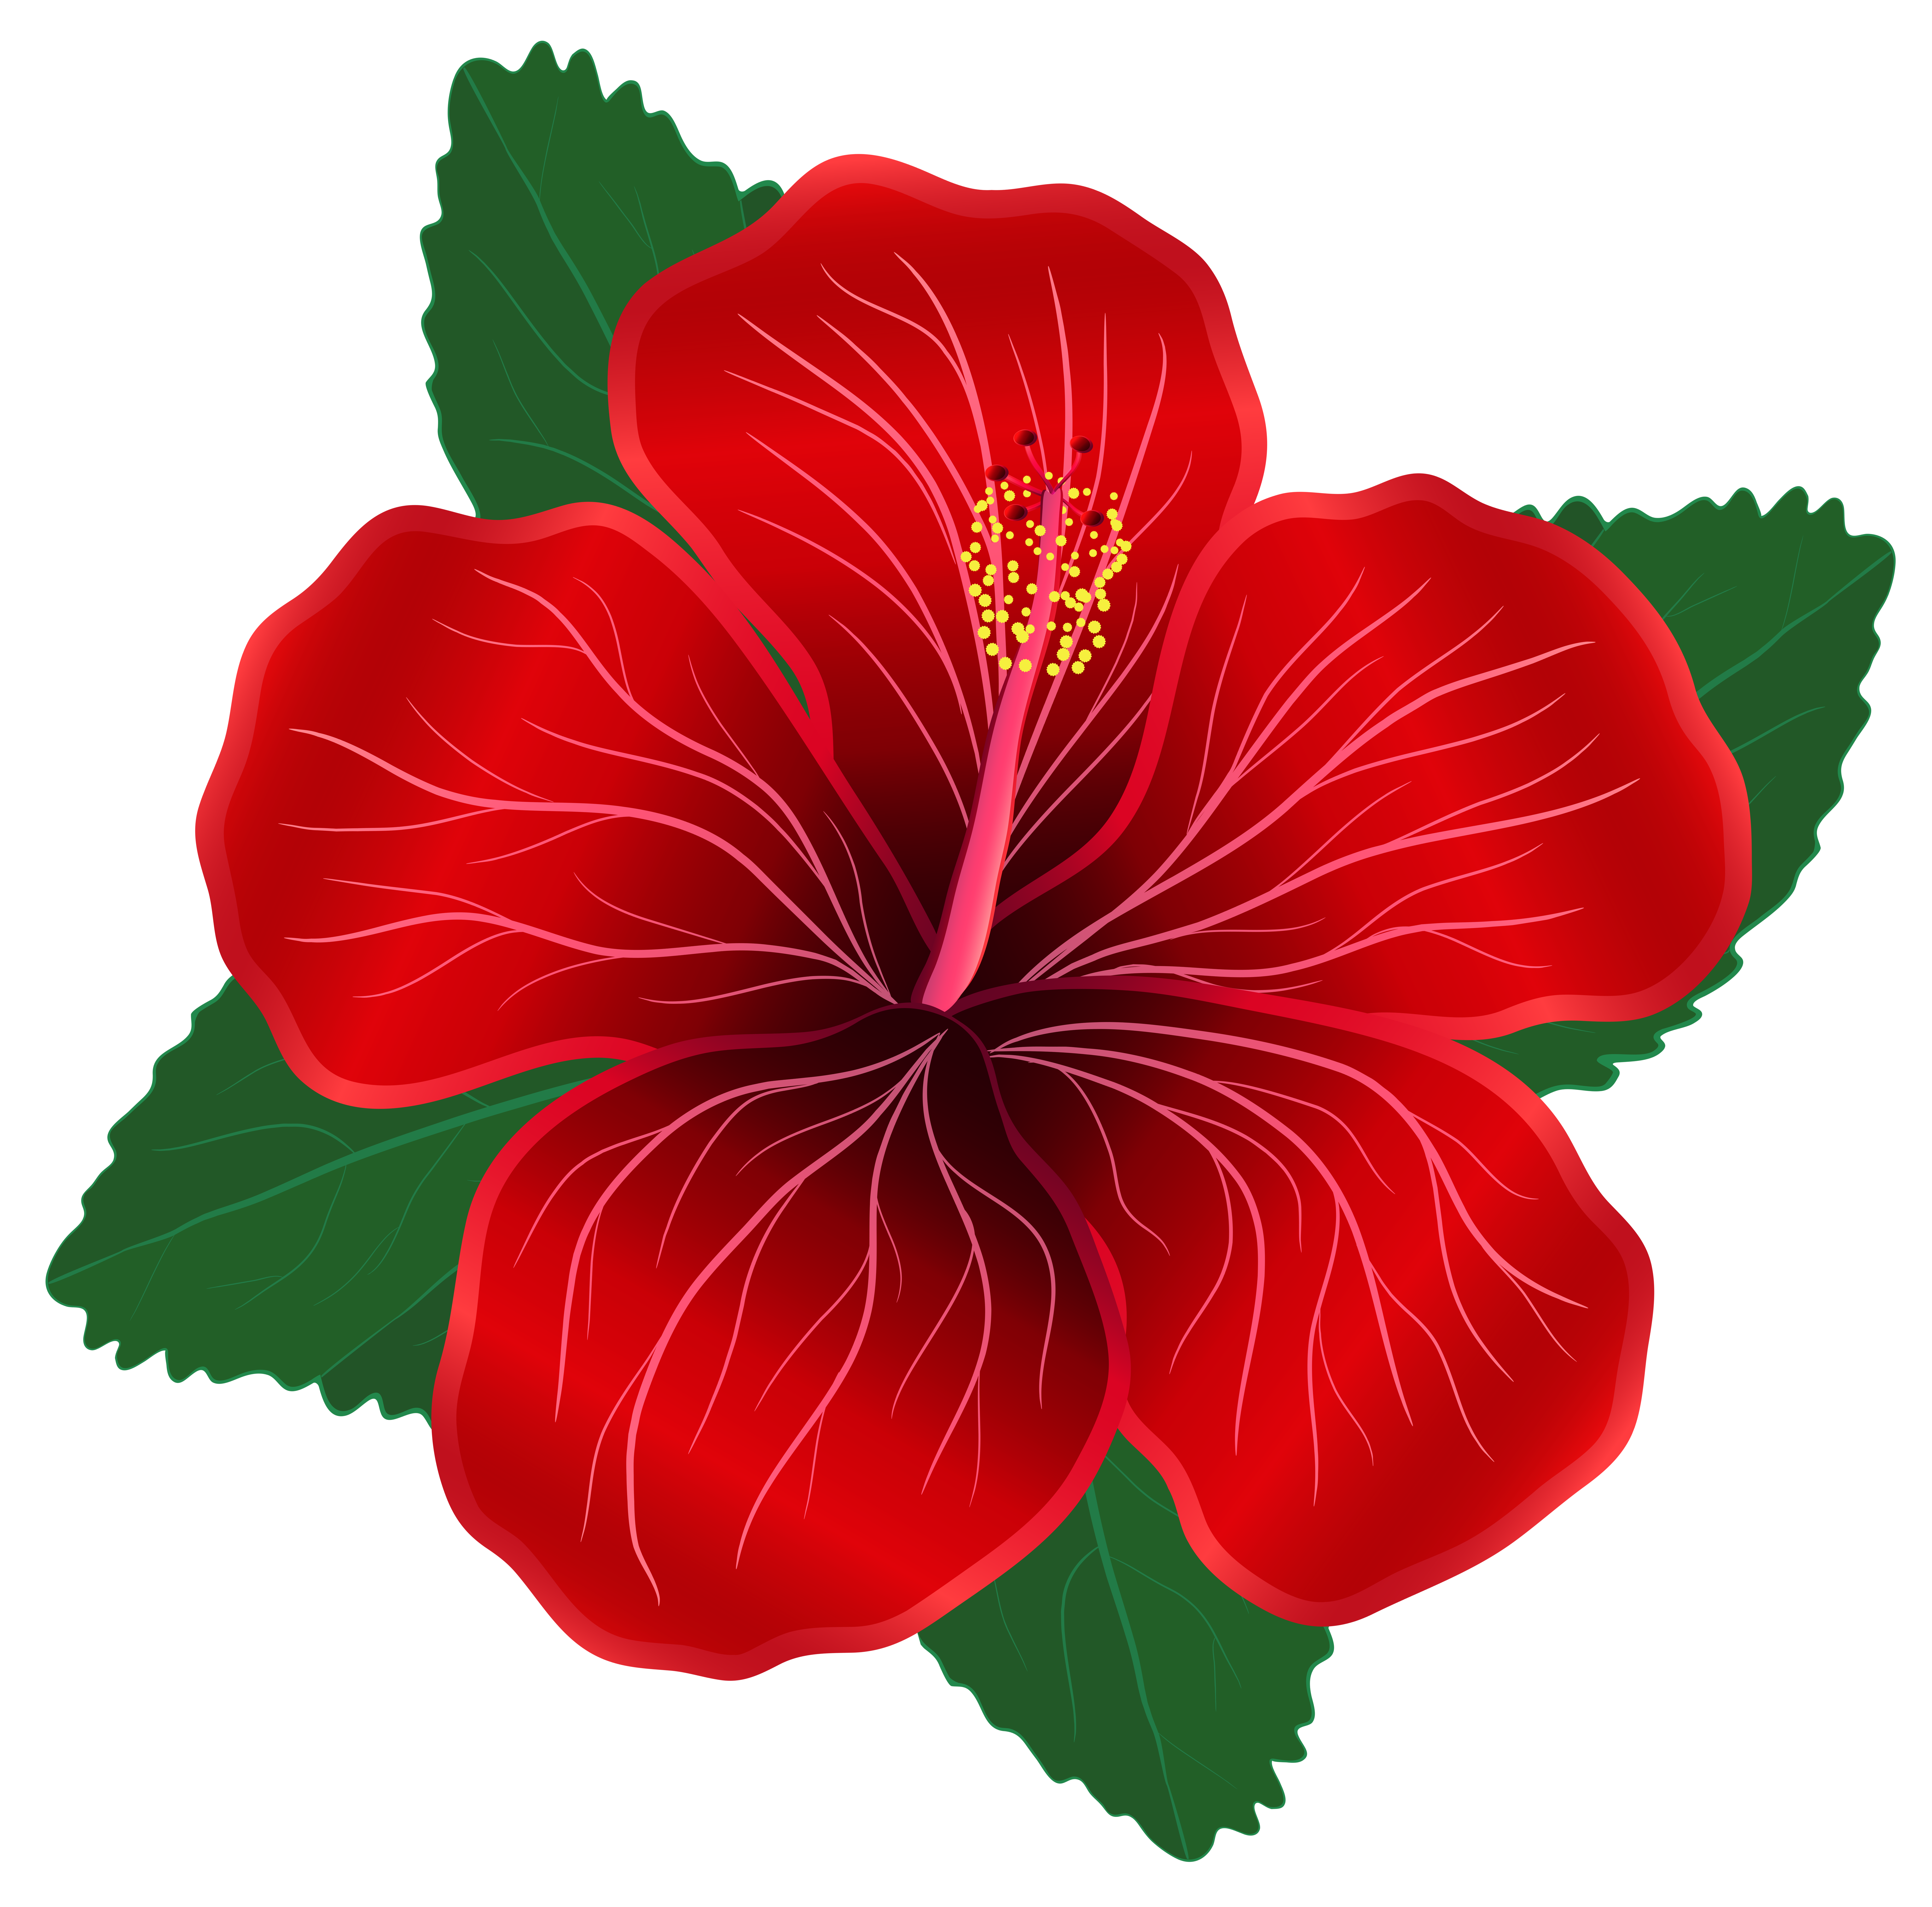 Red flowers png. Flower clipart image gallery